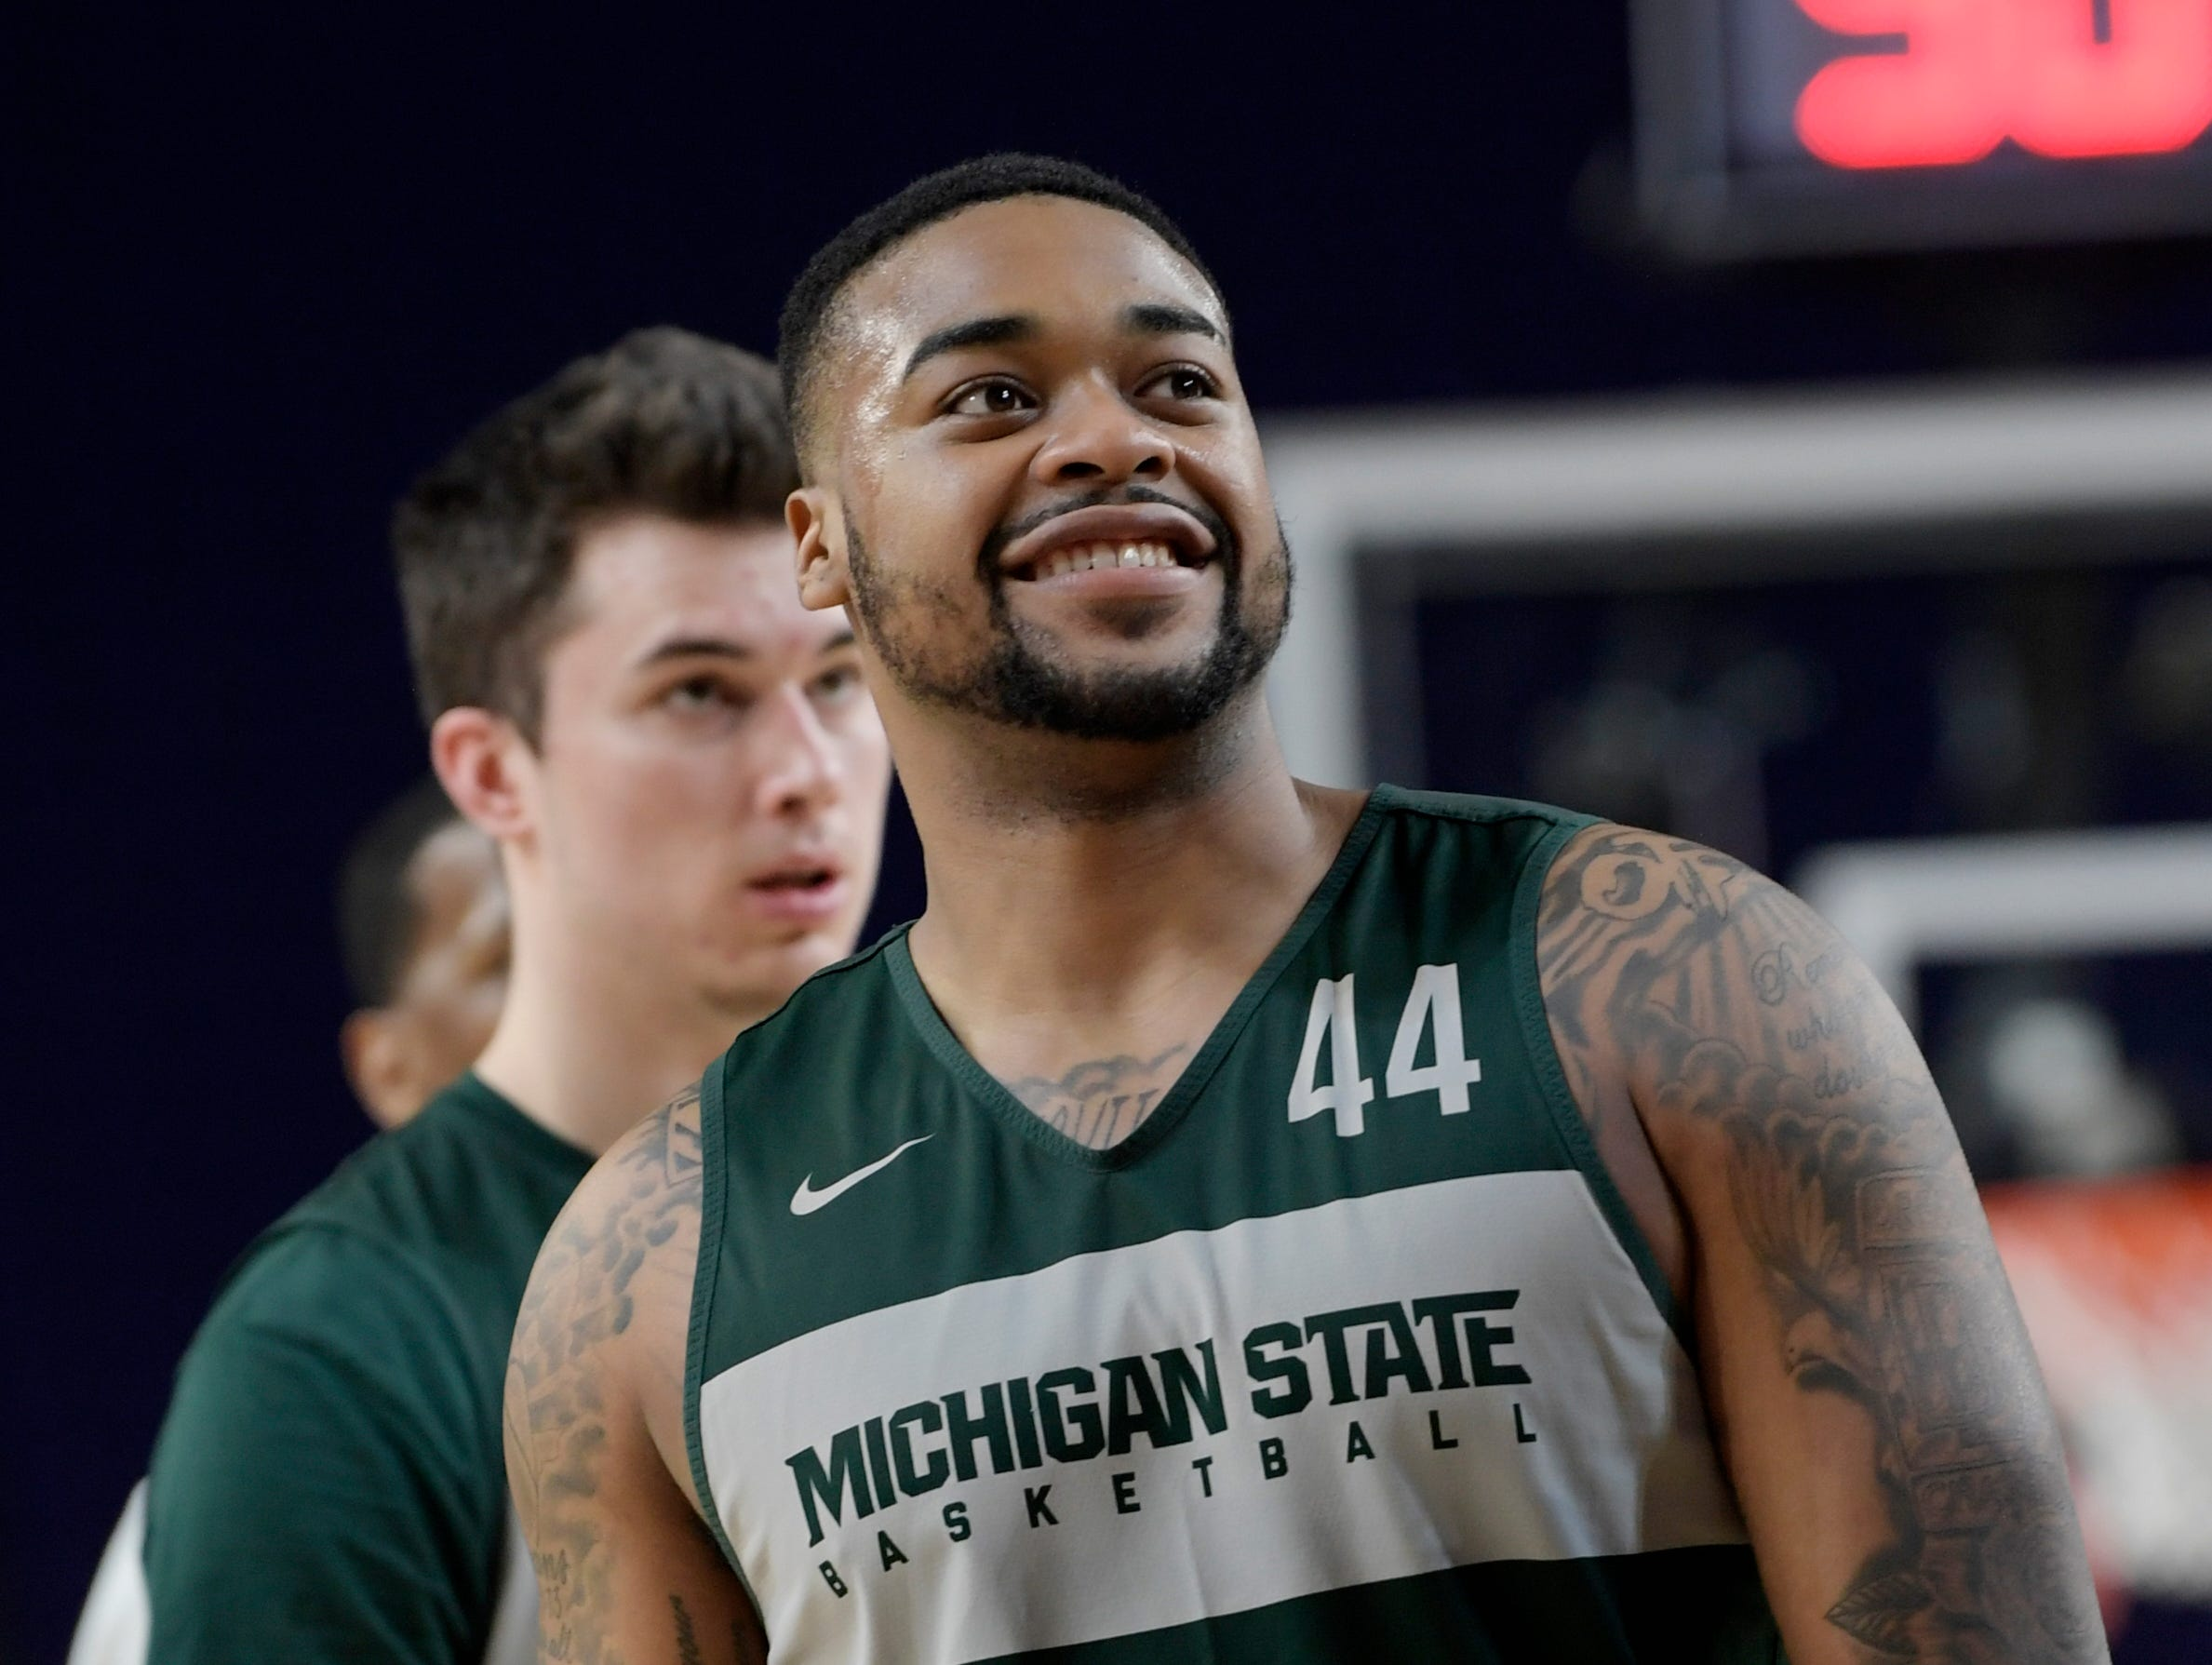 Michigan State Nick Ward (44) participates in a drill during an open practice at U.S. Bank Stadium during the Final Four in Minneapolis, Minnesota on Friday, April 5, 2019.